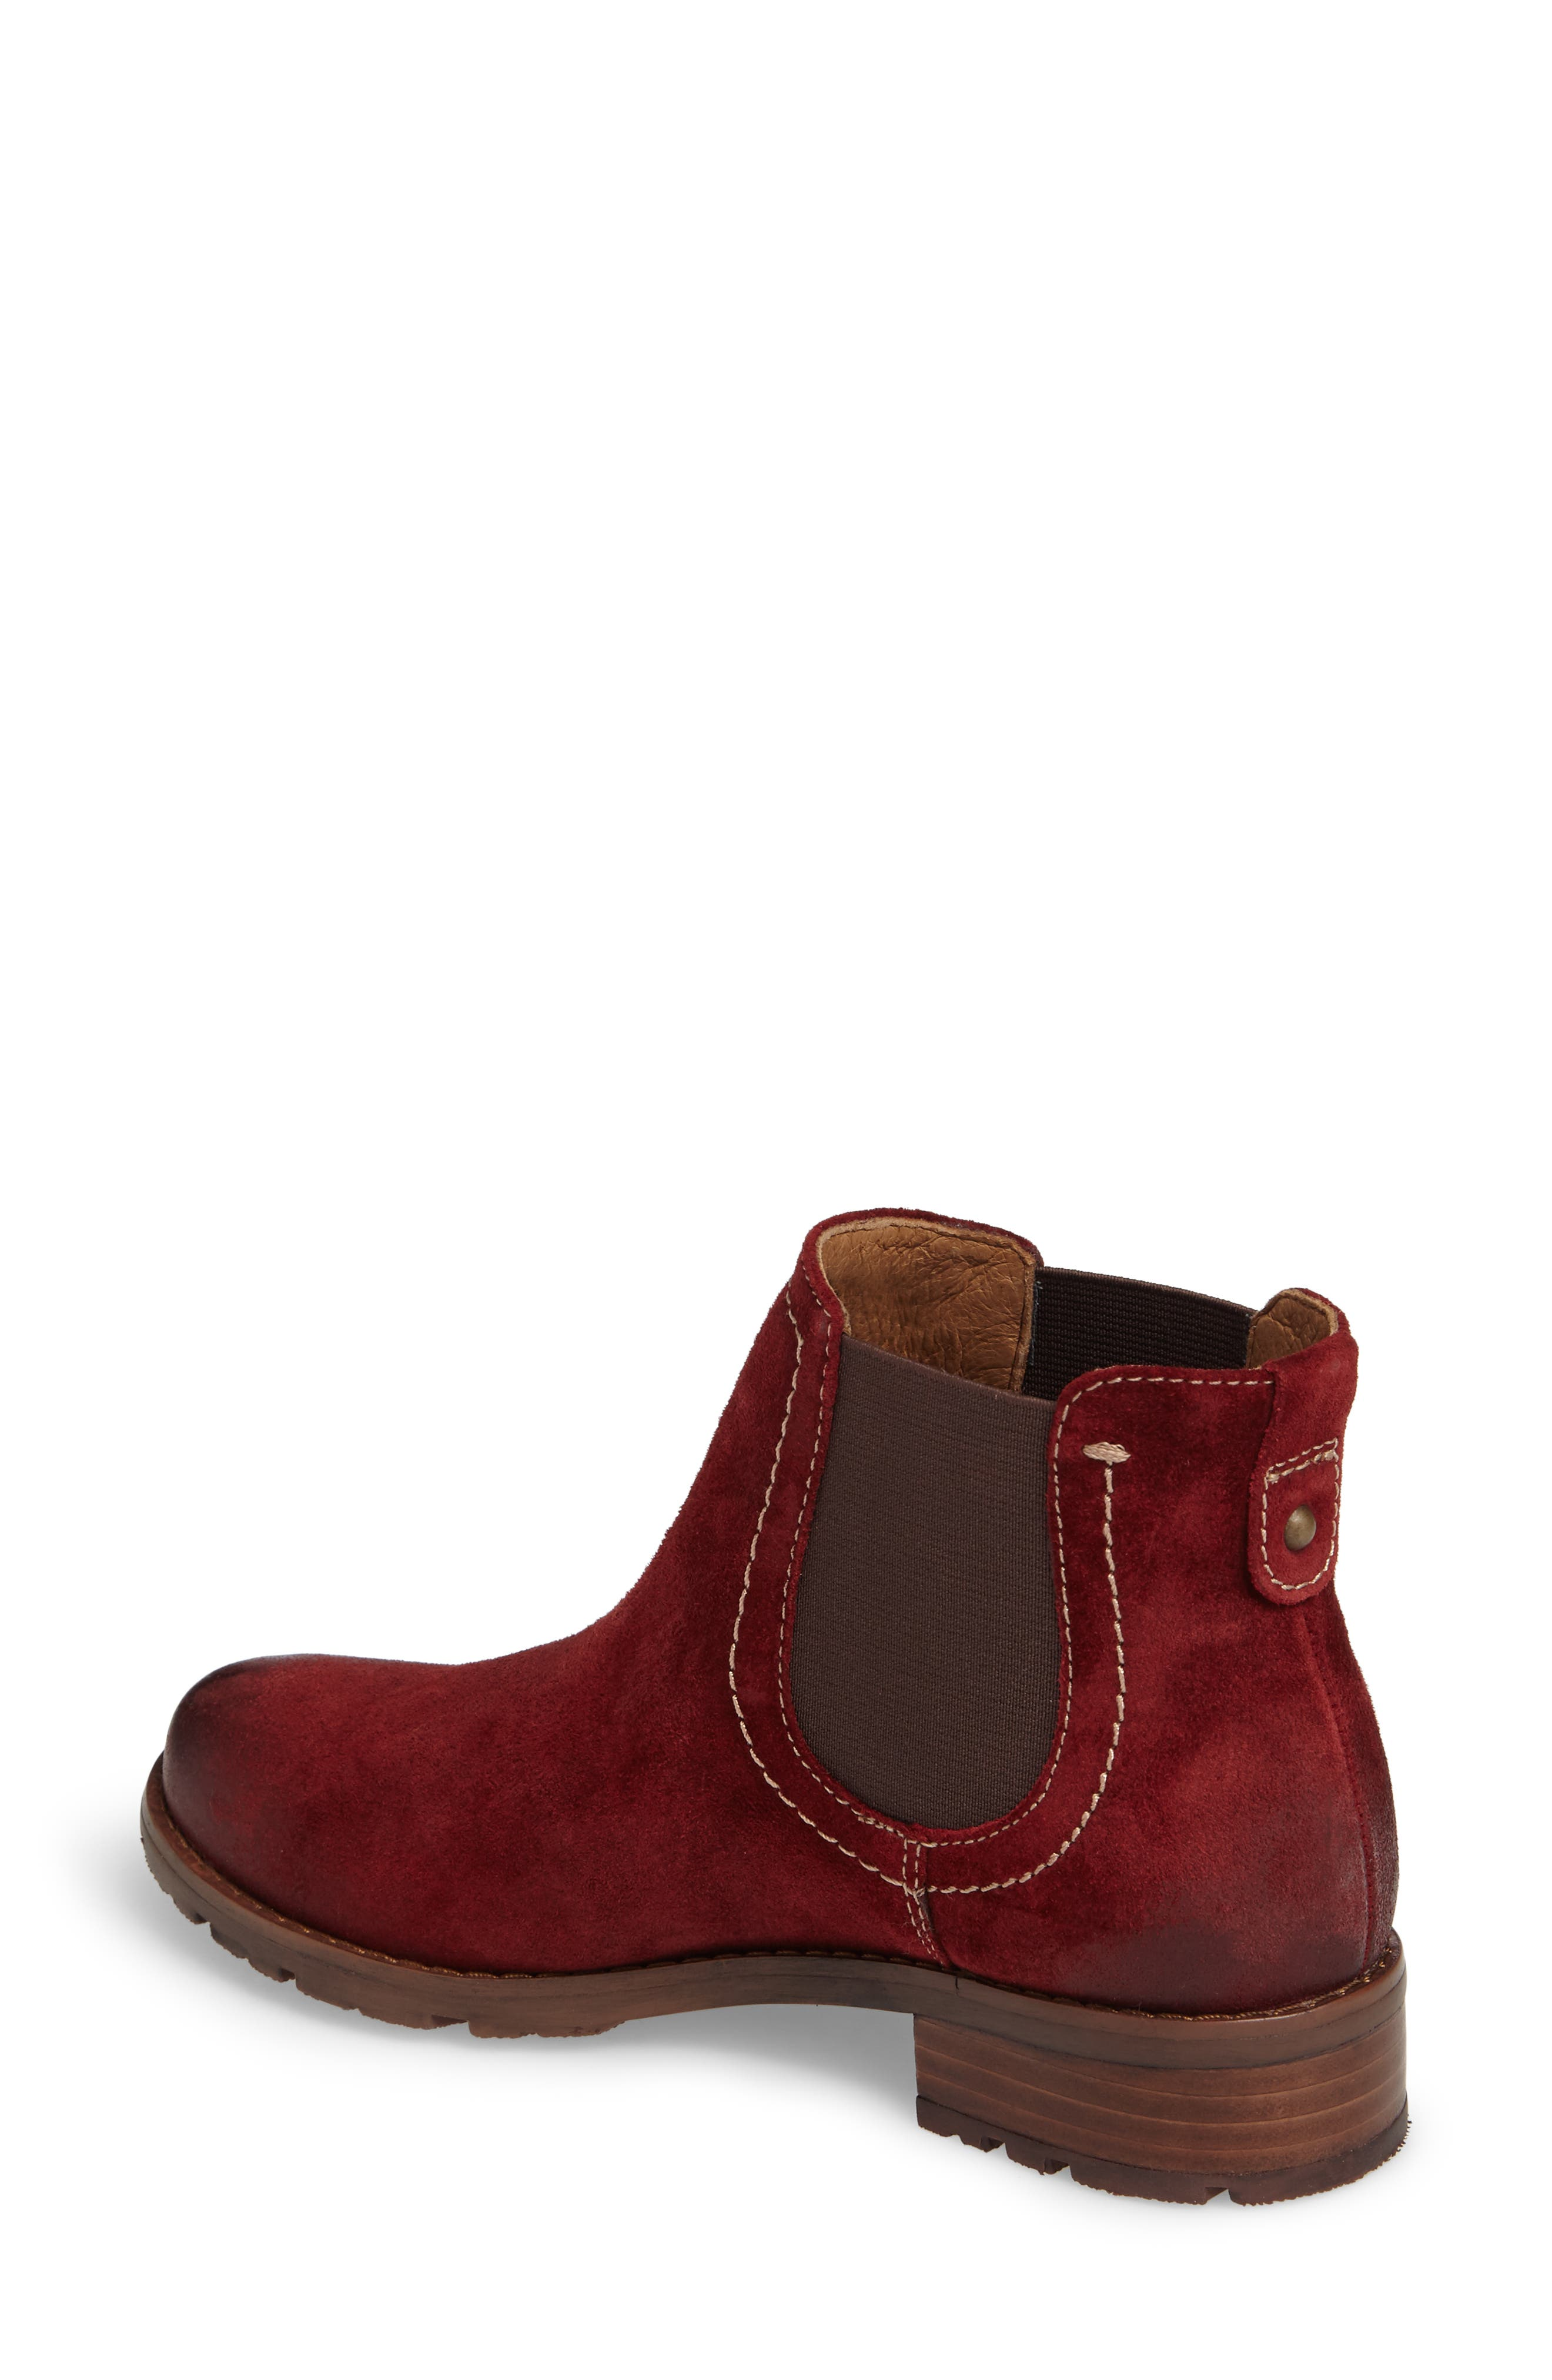 'Selby' Chelsea Bootie,                             Alternate thumbnail 9, color,